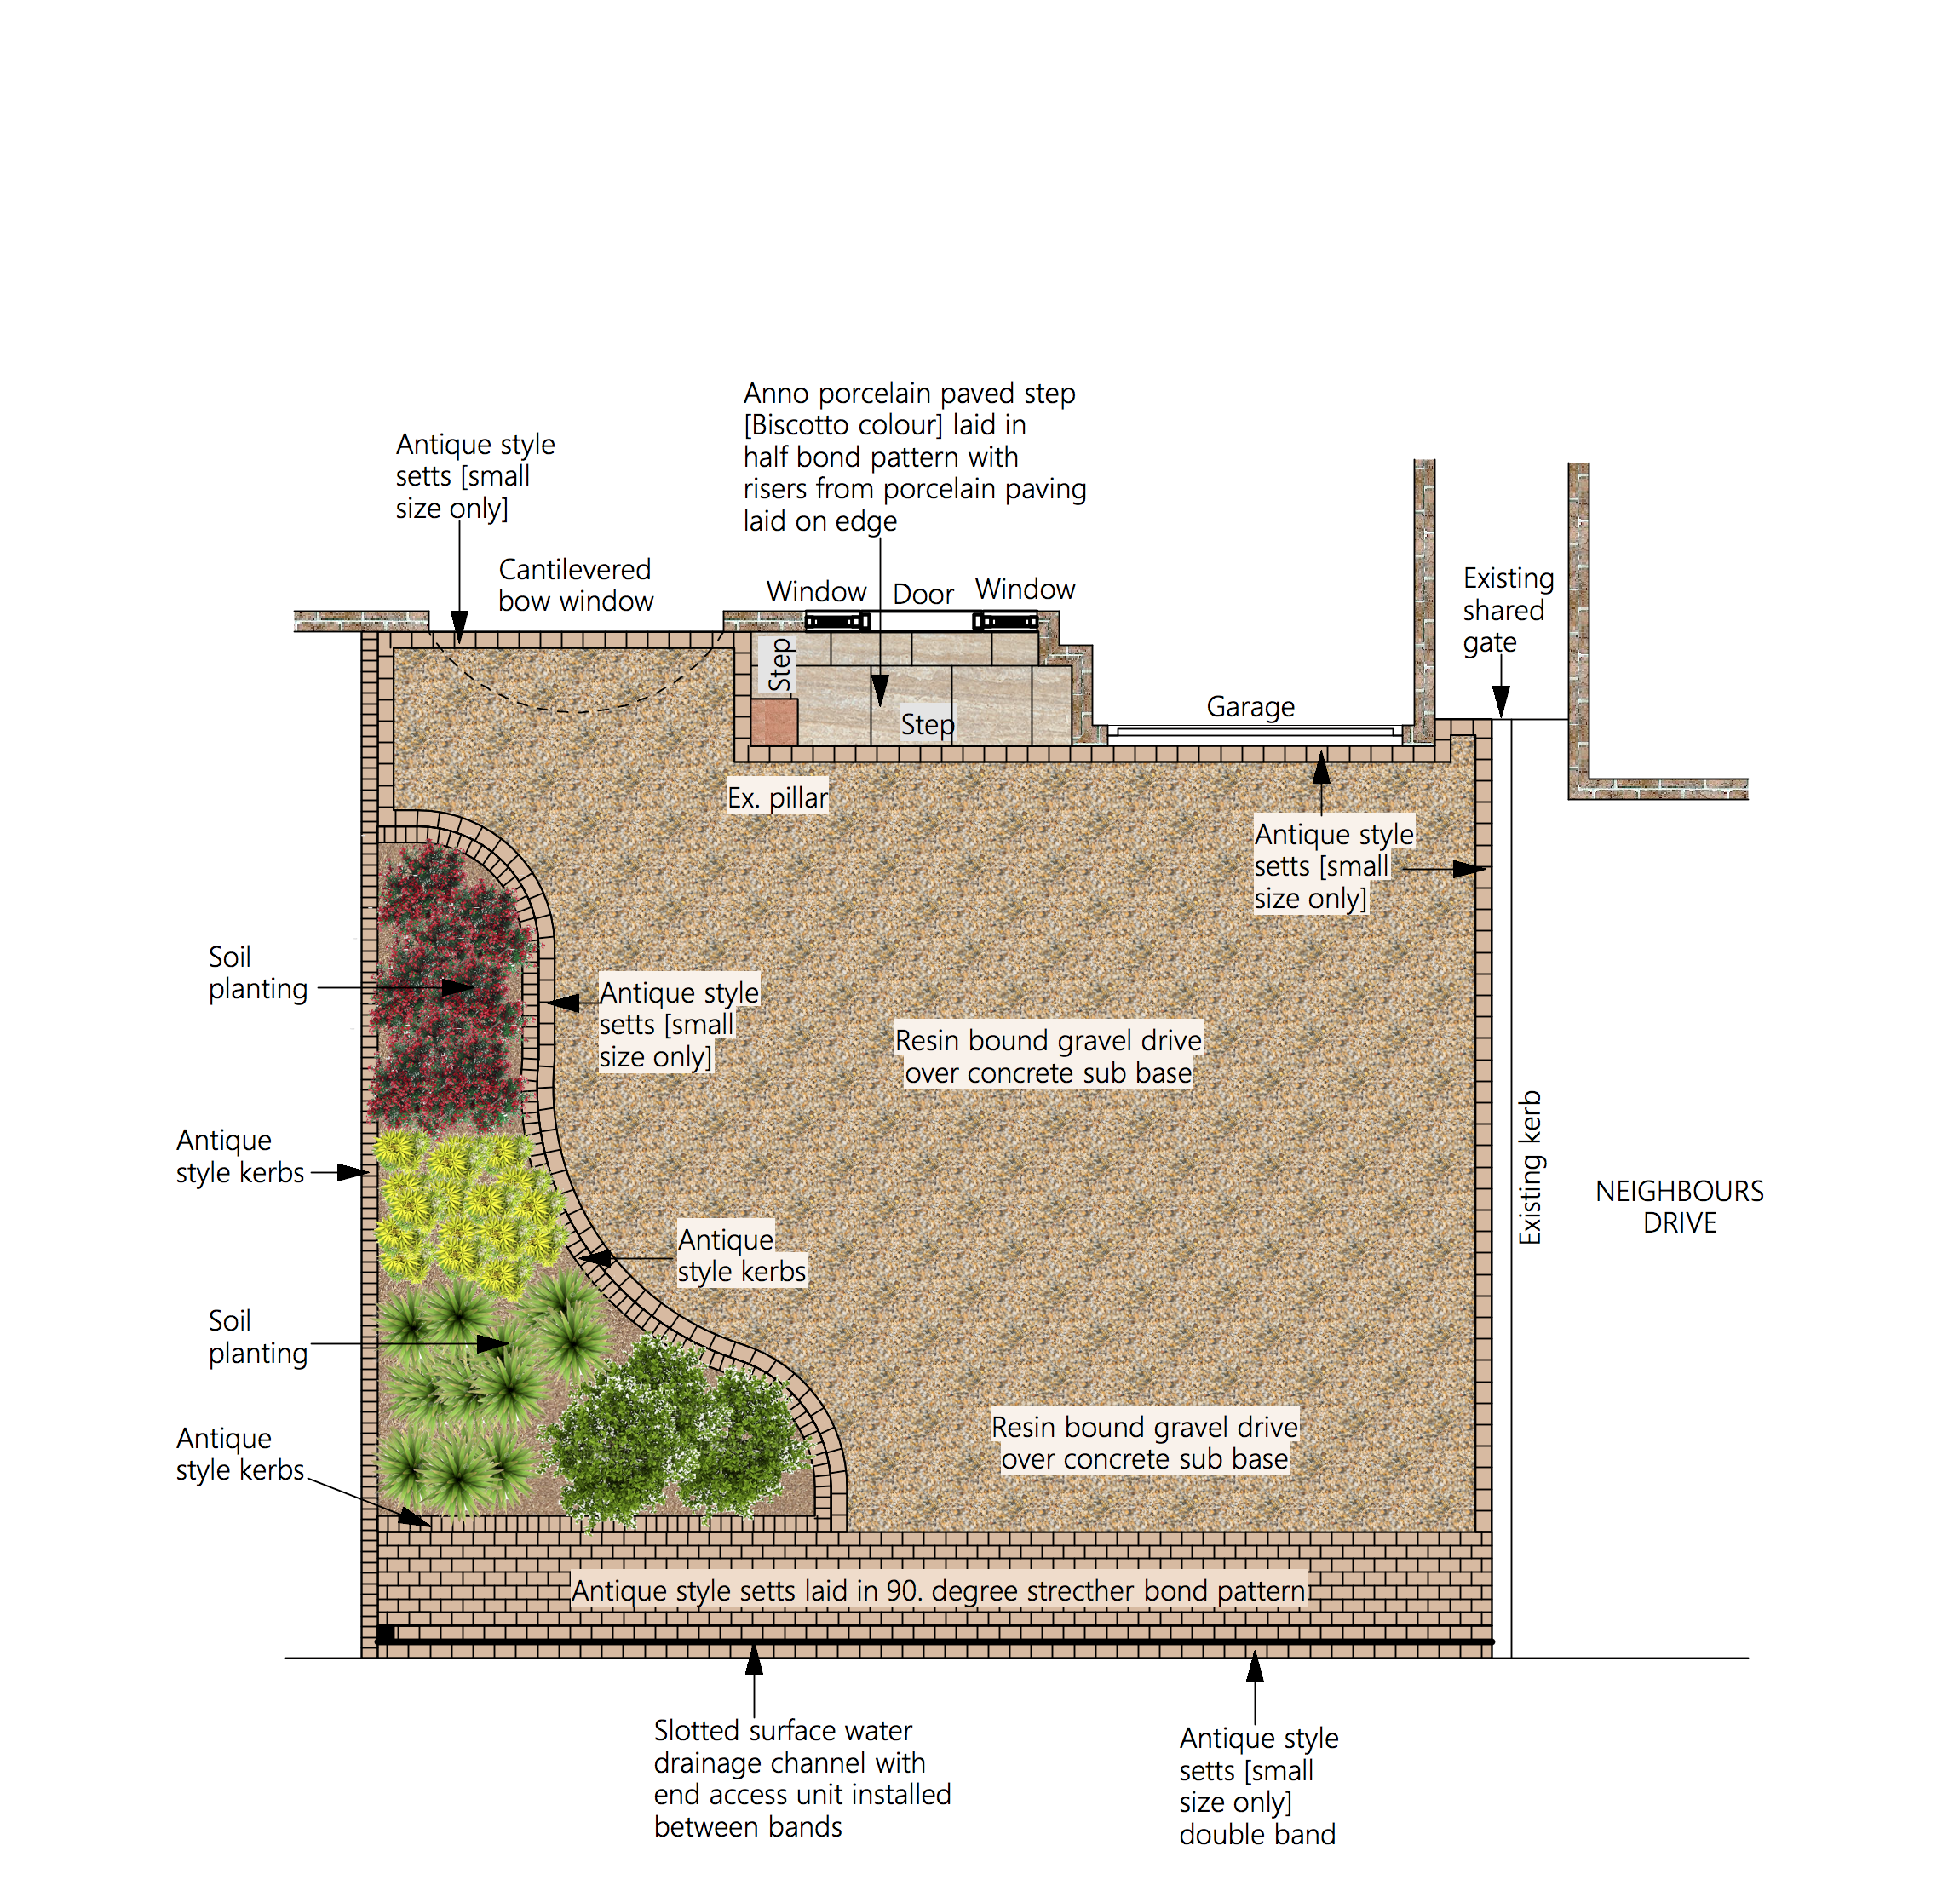 plans for a bonded resin driveway and flowerbeds